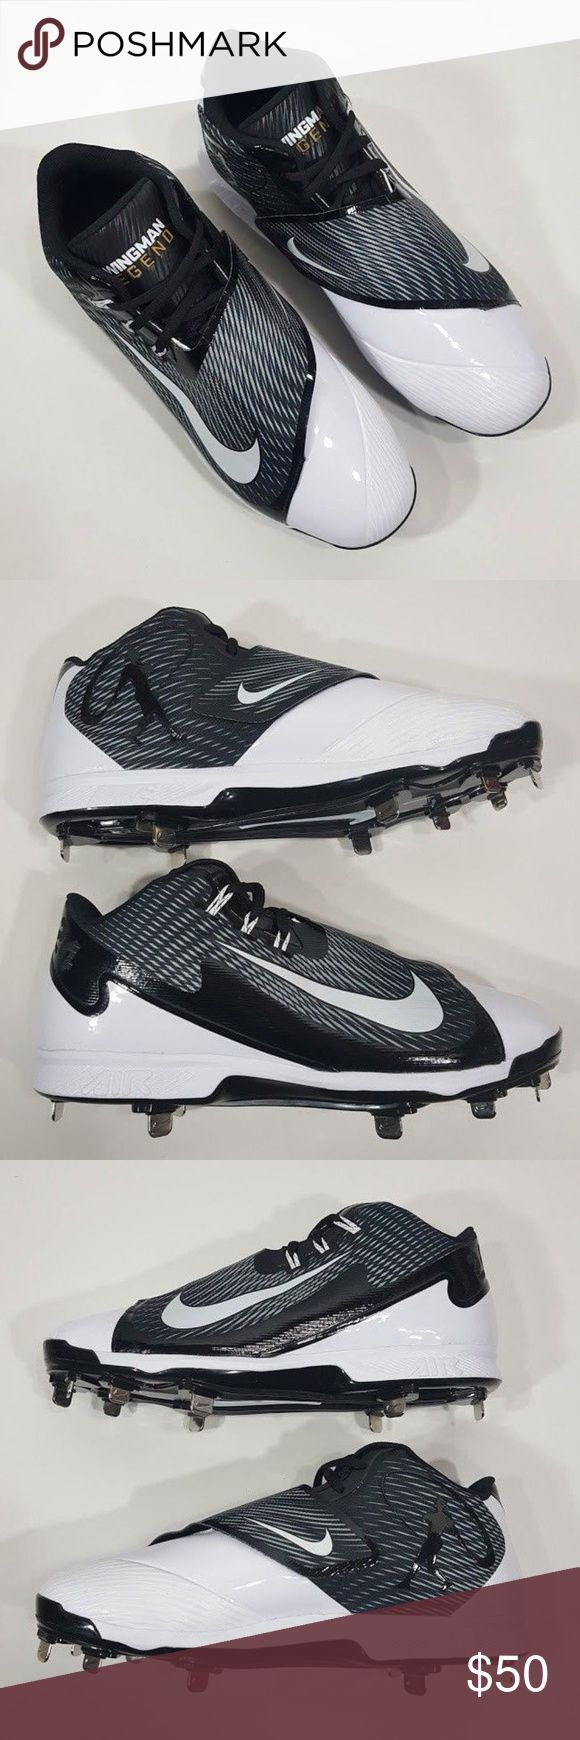 NIKE Air Swingman Legend Baseball Metal Cleats Integrated Flywire technology wraps the foot and allows for a custom fit TPU plate with six full-length metal cleats; three smaller metal cleats in the forefoot for outstanding traction Full-length Nike Air unit cushions for impact protection Midfoot strap provides supreme lock-down Synthetic and mesh upper helps keep your foot cool and comfortable  Item ships within 2 business days of payment. Nike Shoes Athletic Shoes